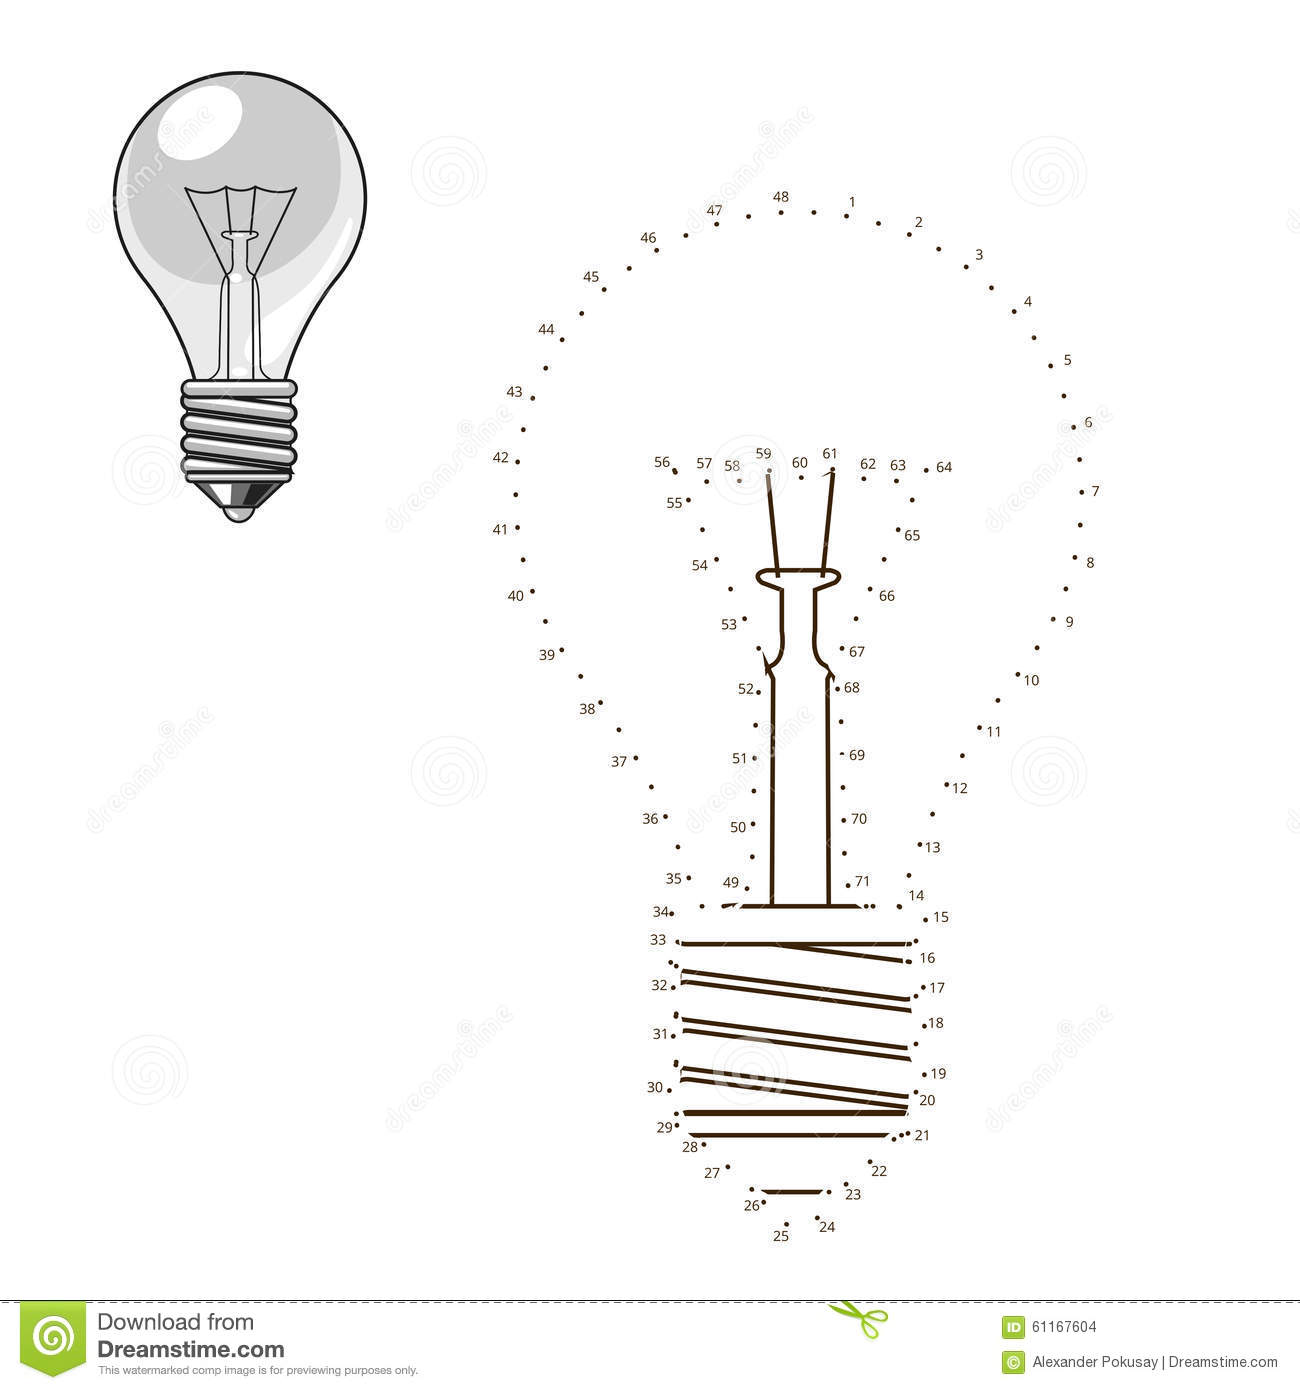 Light Bulb Schematic Auto Electrical Wiring Diagram Incandescent Touch Dimmer Circuit Connect Dots To Draw Lightbulb Educational Game Stock